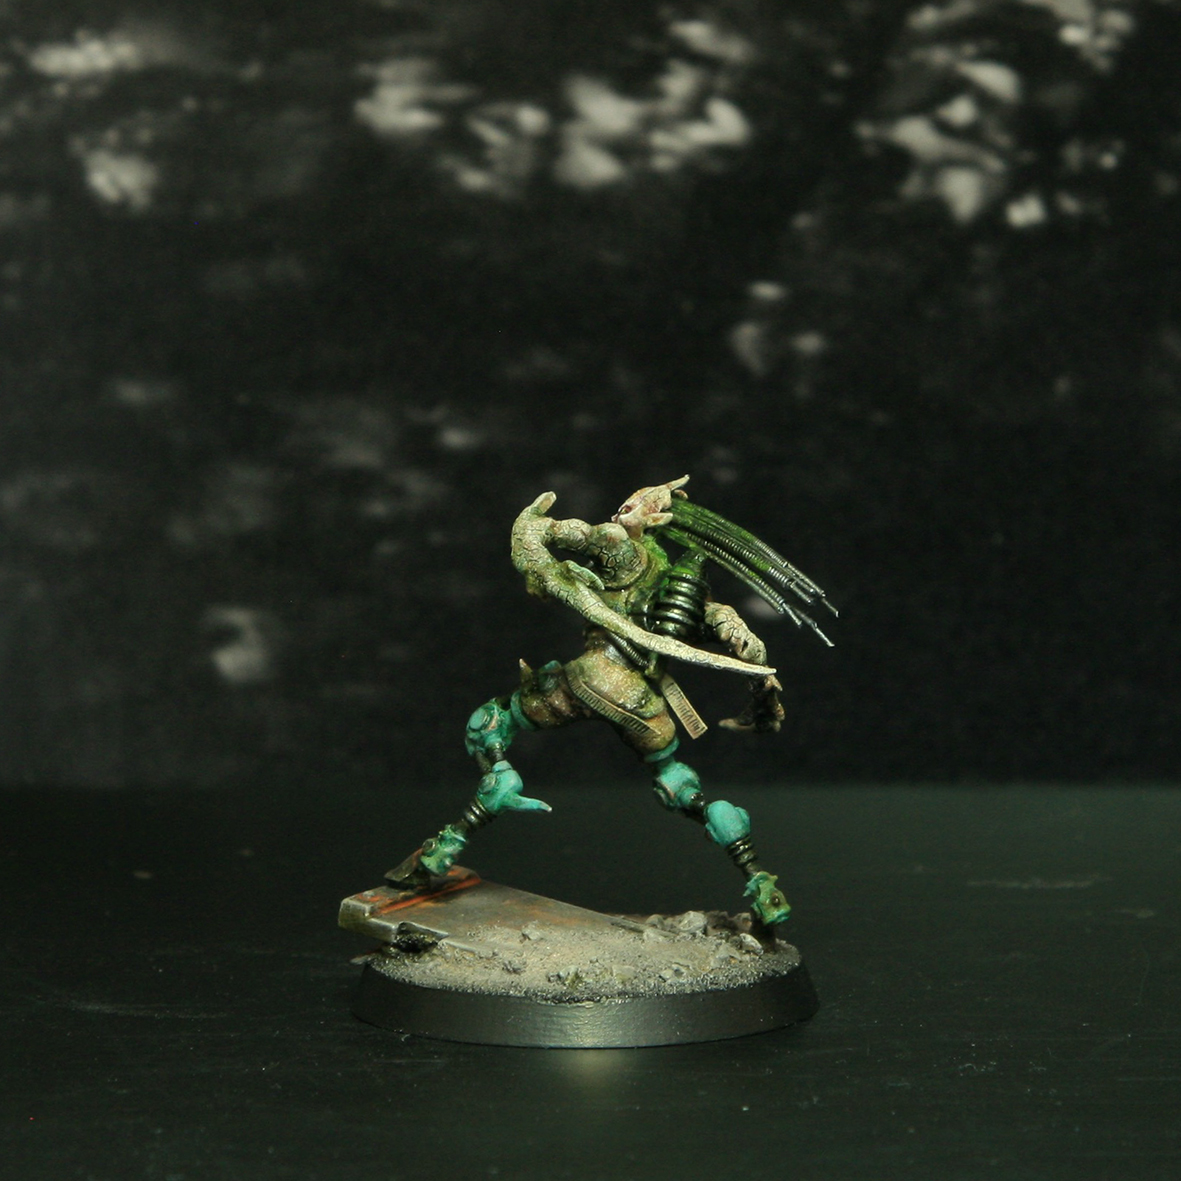 THORN_GUARD_003_20_20_IMG_1085